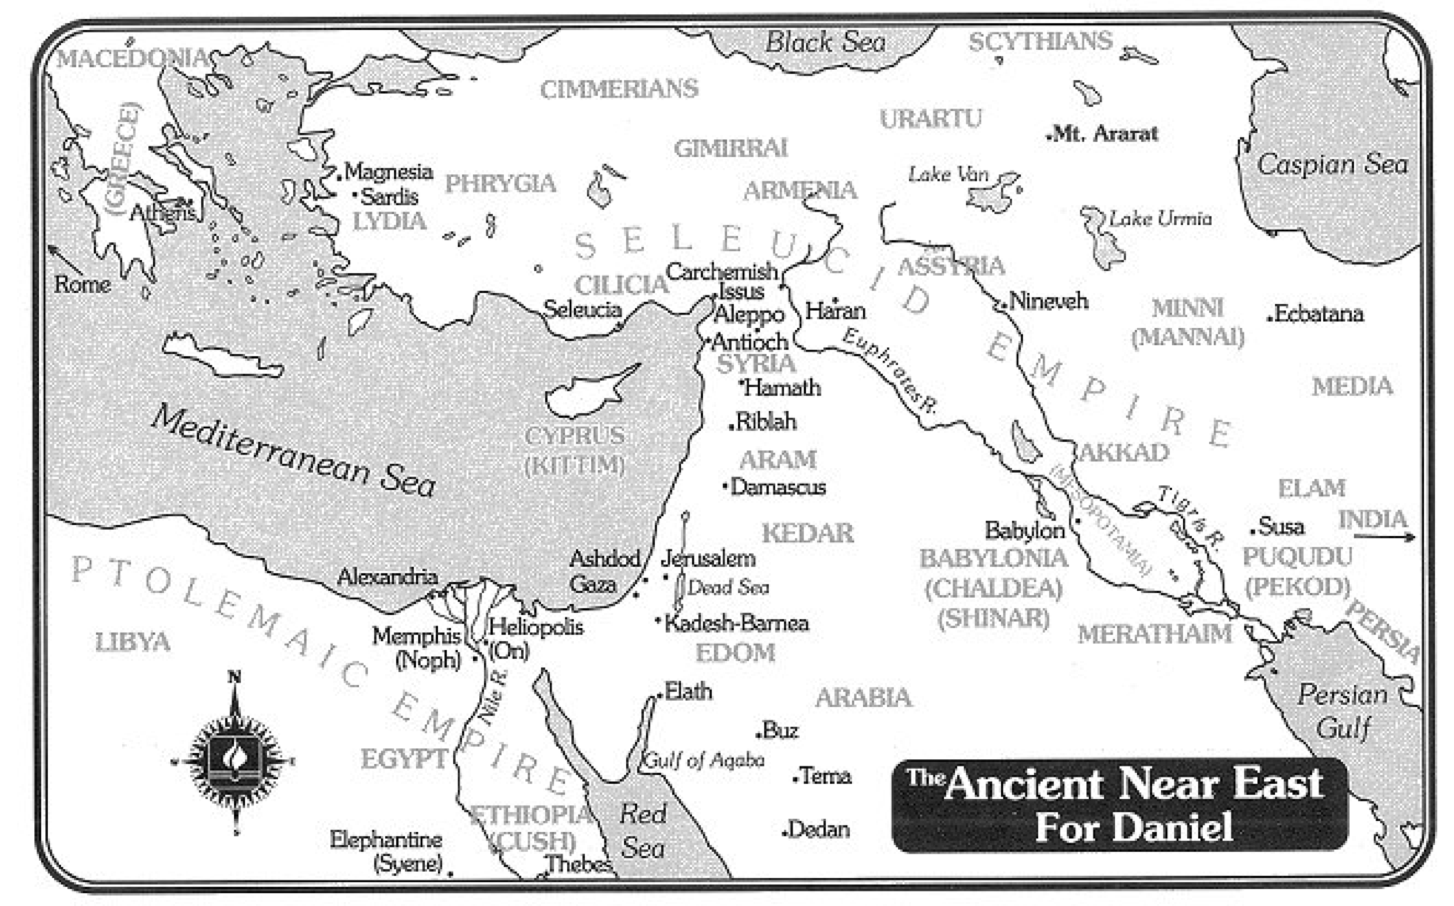 Map for Book of Daniel